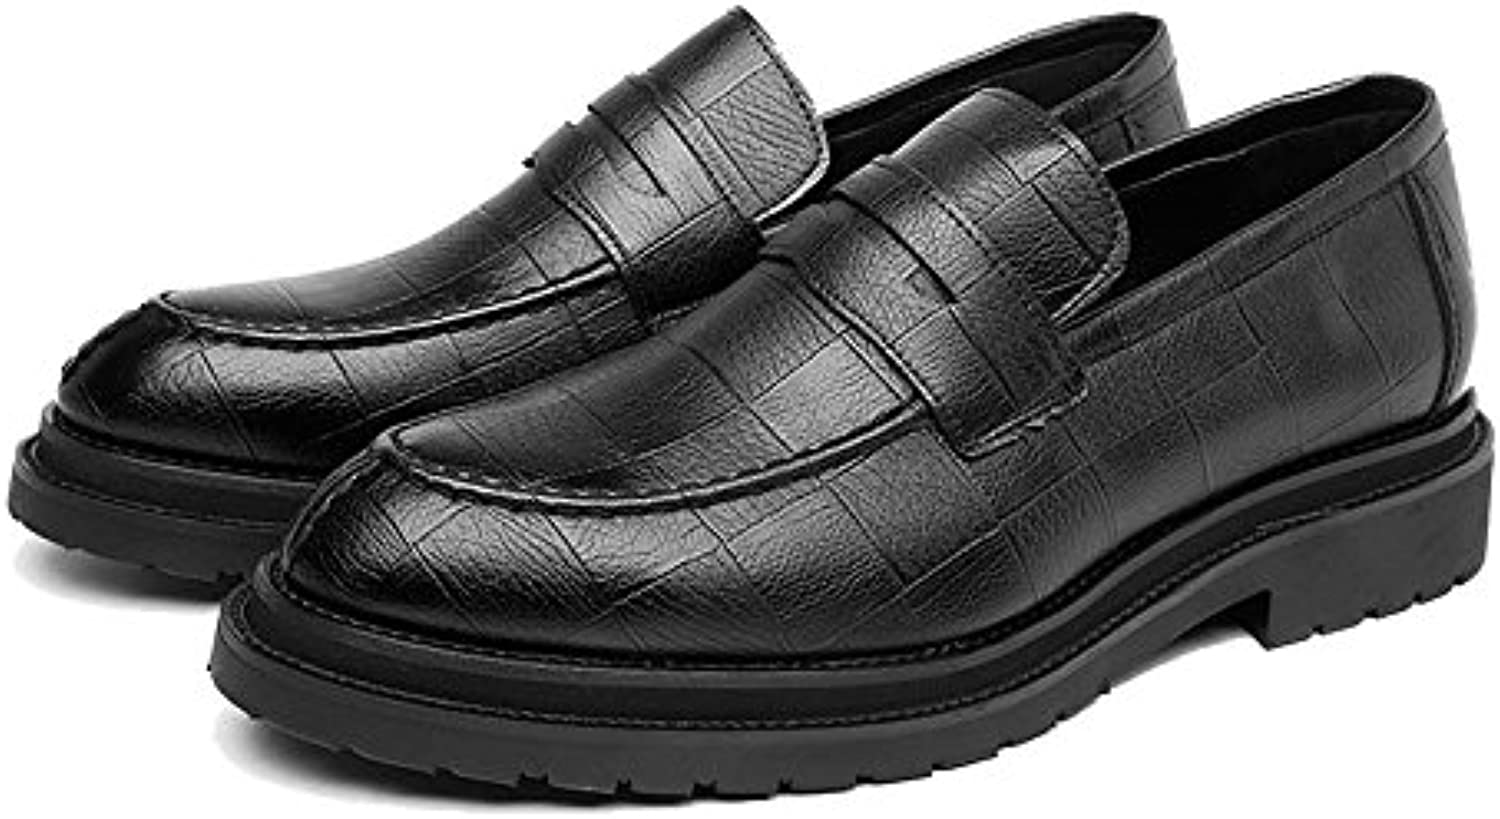 Jiuyue shoes  Sommer 2018 Herren Business PU Lederschuhe Klassische Slip on Loafers Platz Textur Outsole Oxfords